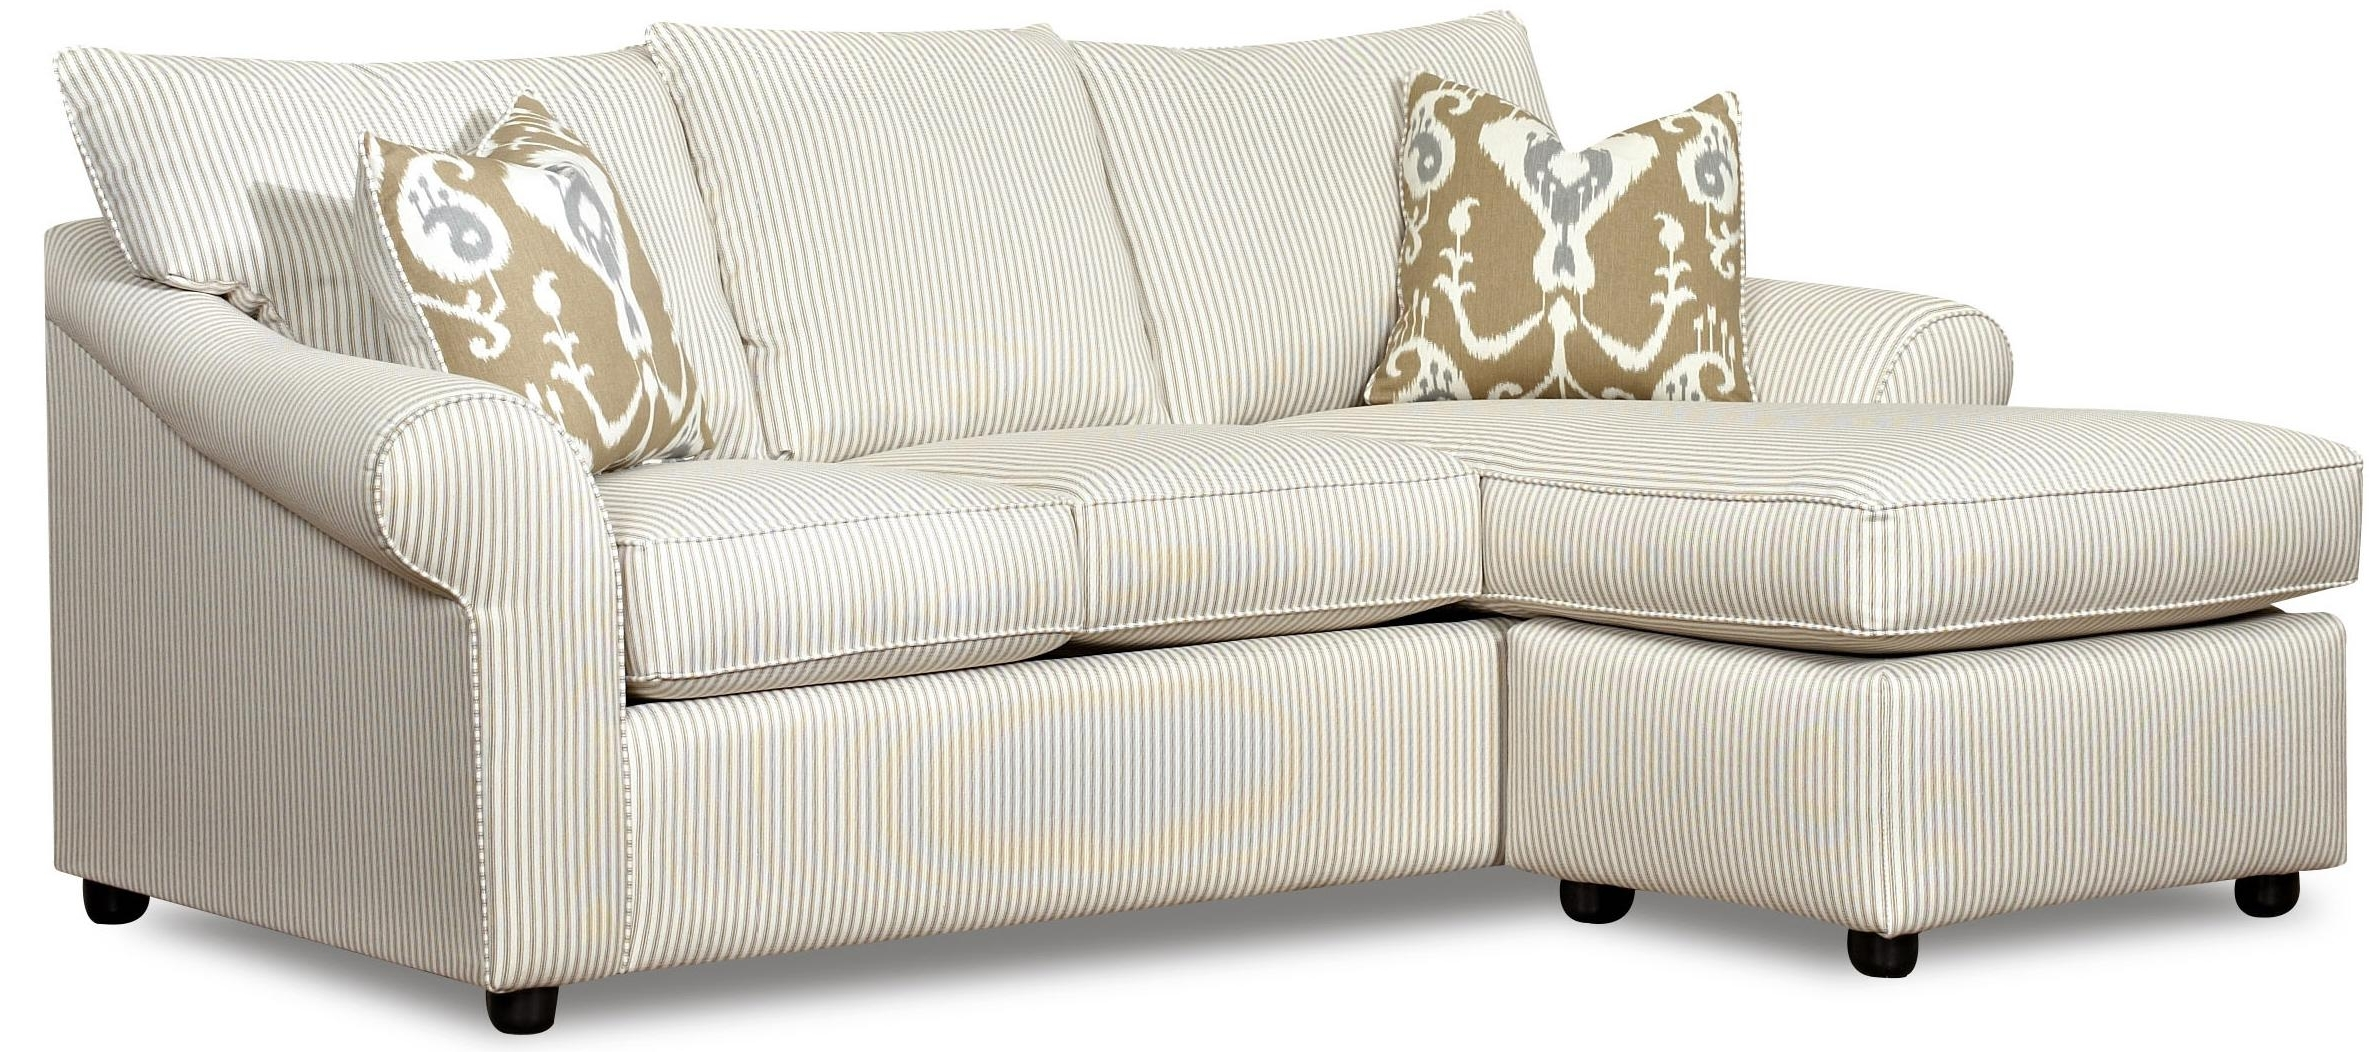 Sofas With Chaise Lounge With Regard To Latest Sofa With Reversible Chaise Loungeklaussner (View 11 of 15)